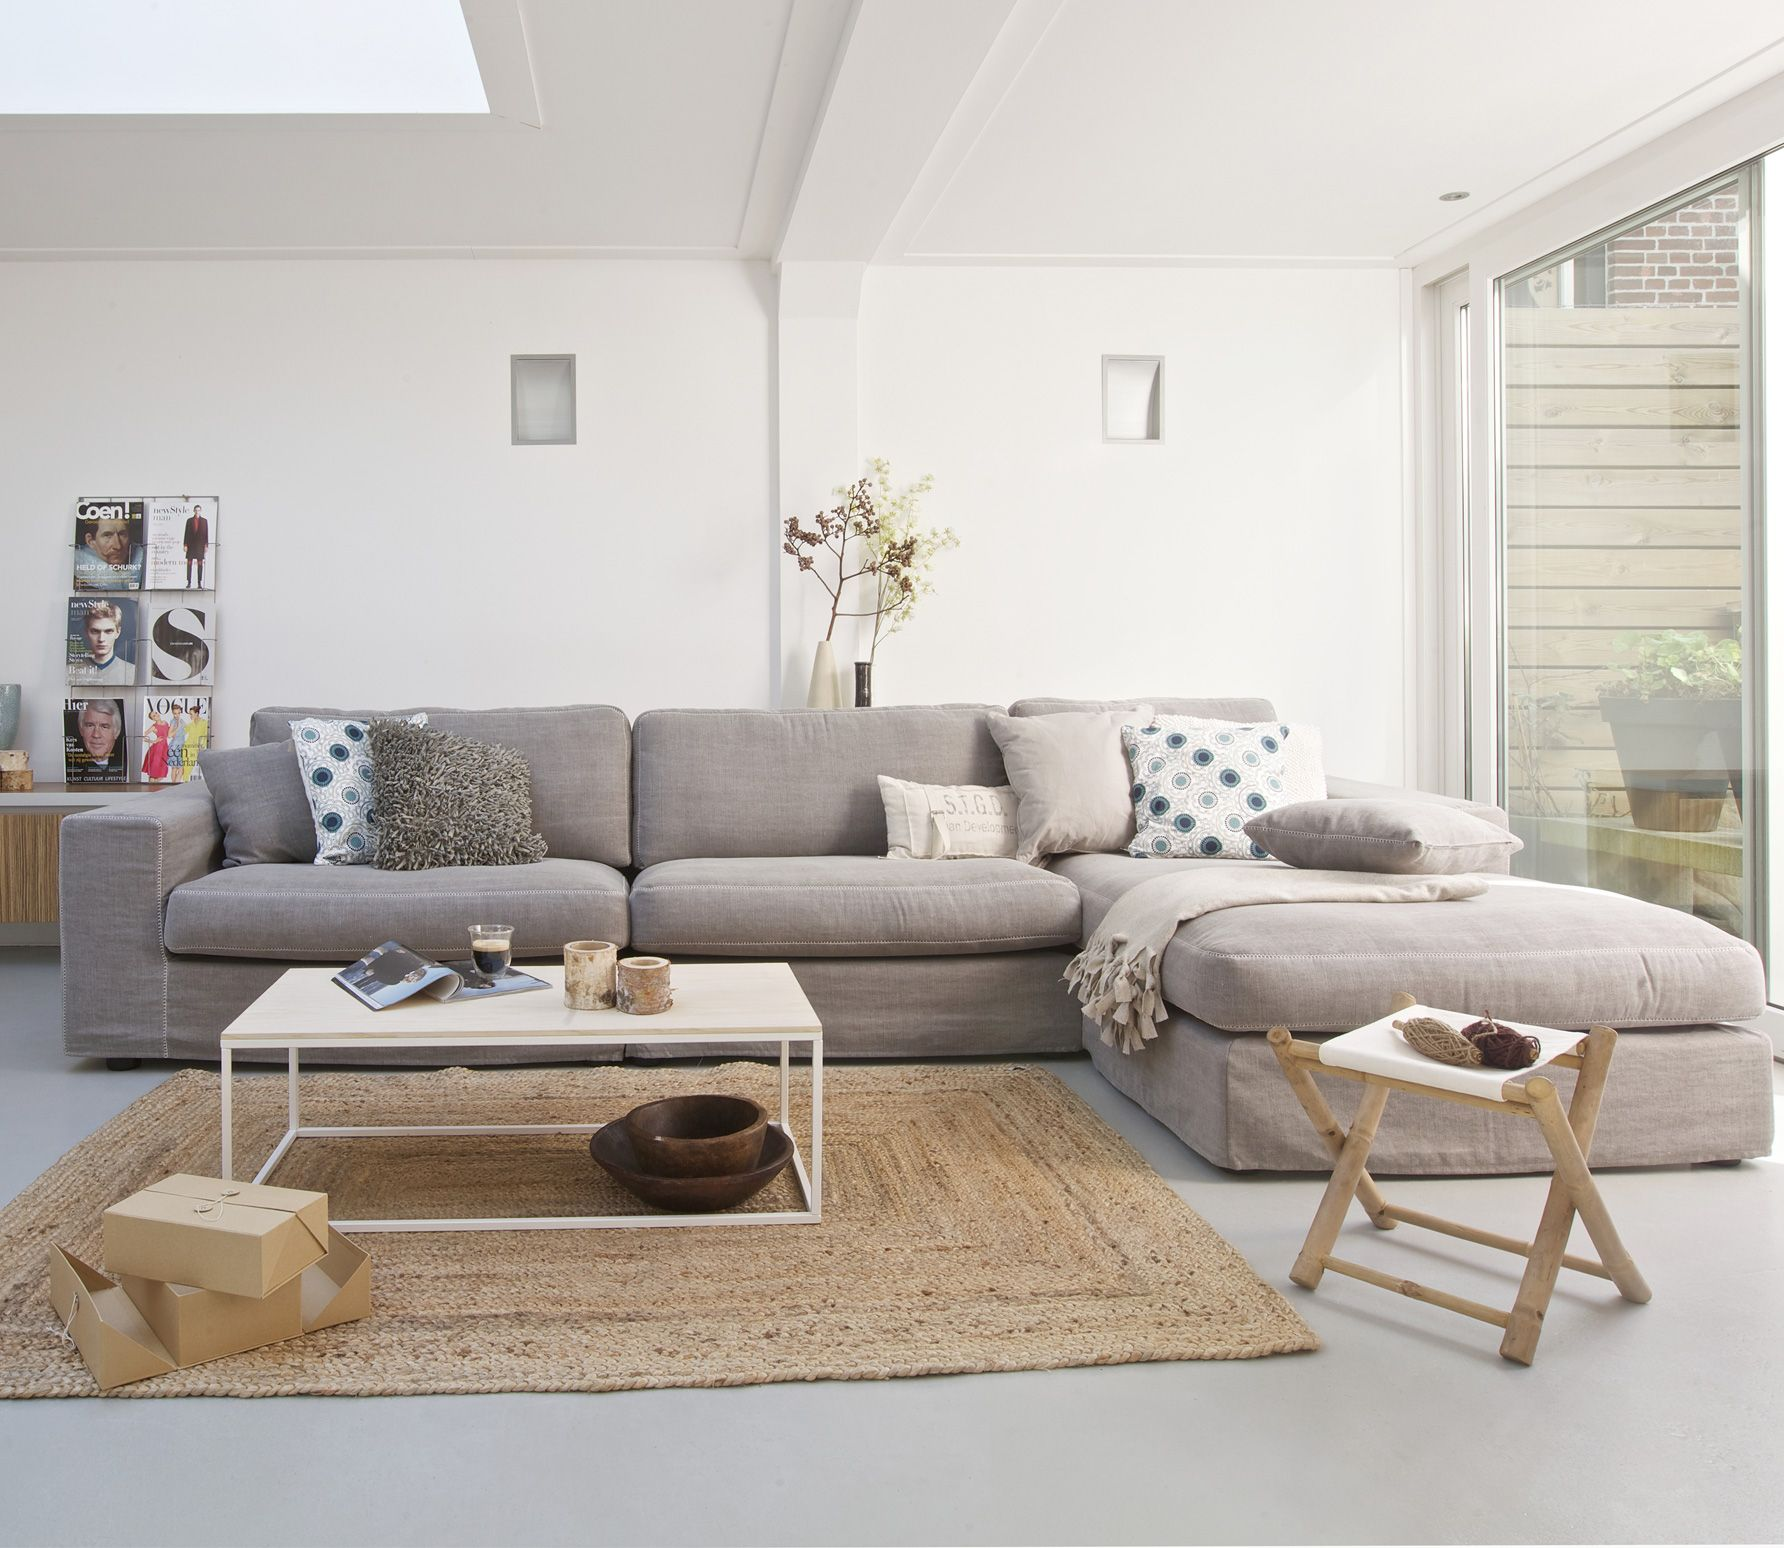 Couch, Modern living rooms and Living rooms on Pinterest